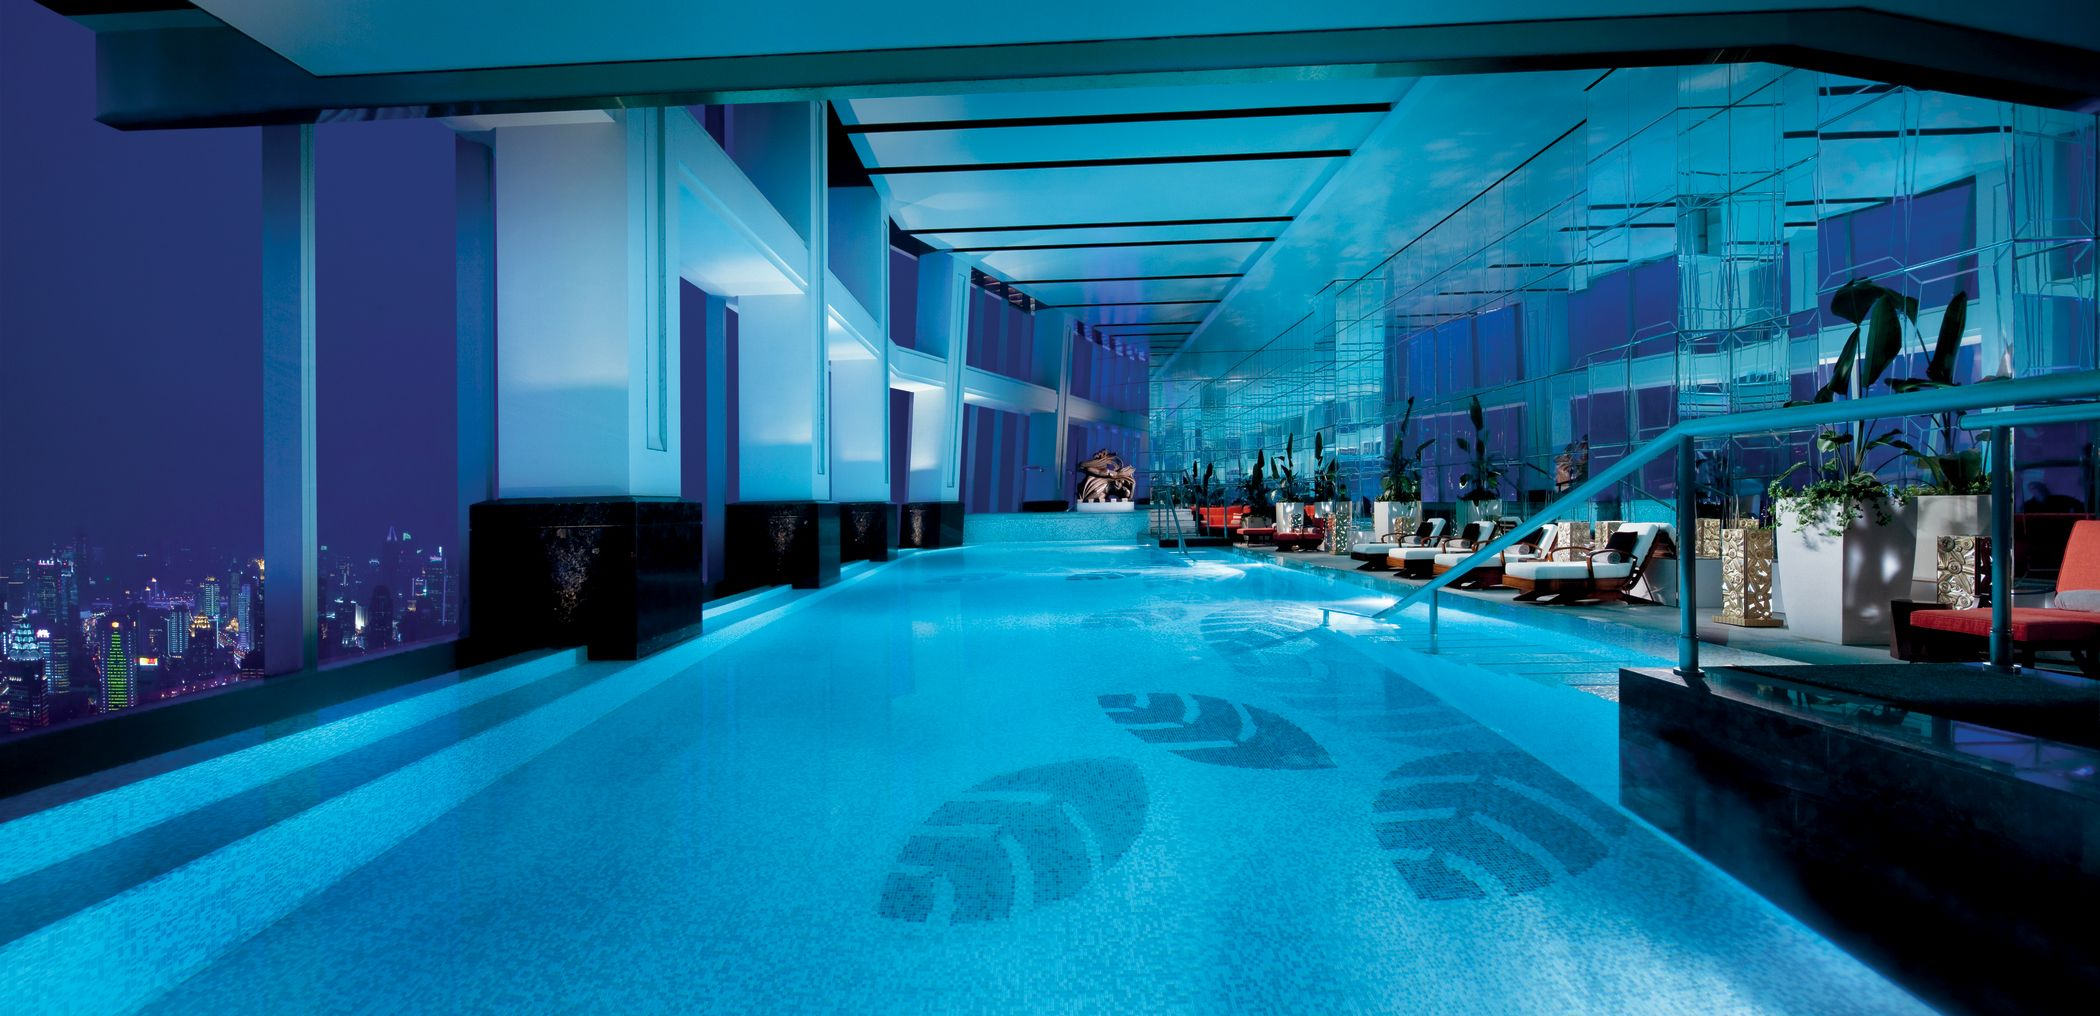 Enjoy The Serenity And Relaxation At The Heated Indoor Infinity Pool With Sweeping City View At